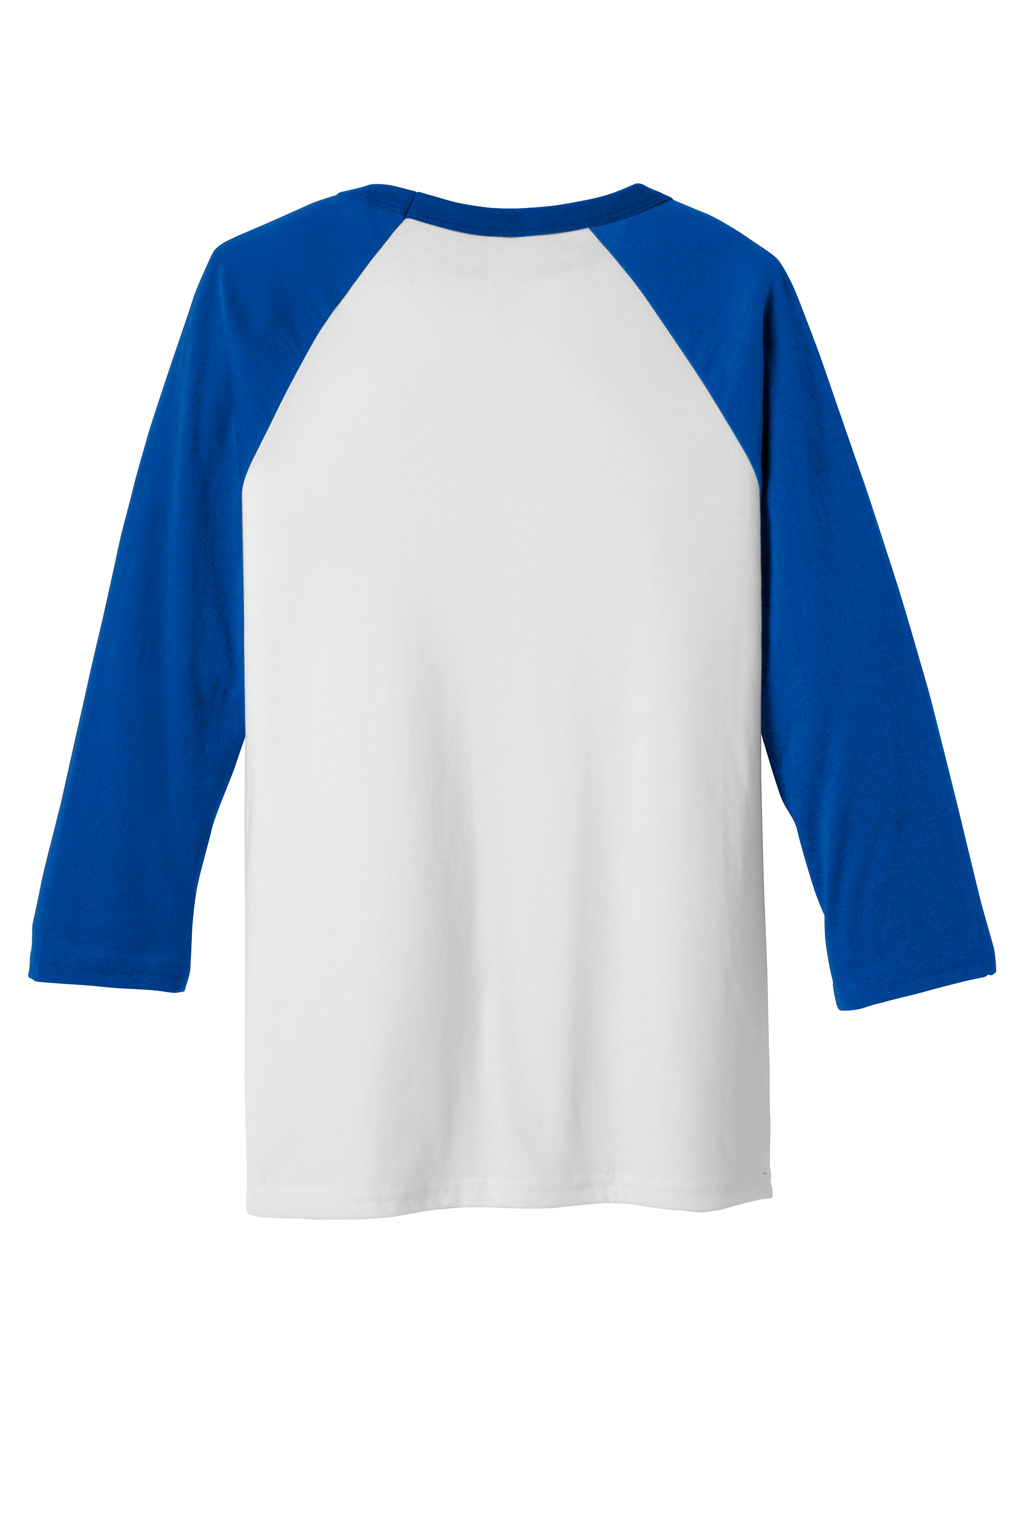 J&M Bella + Canvas Baseball Tee Solid Colors